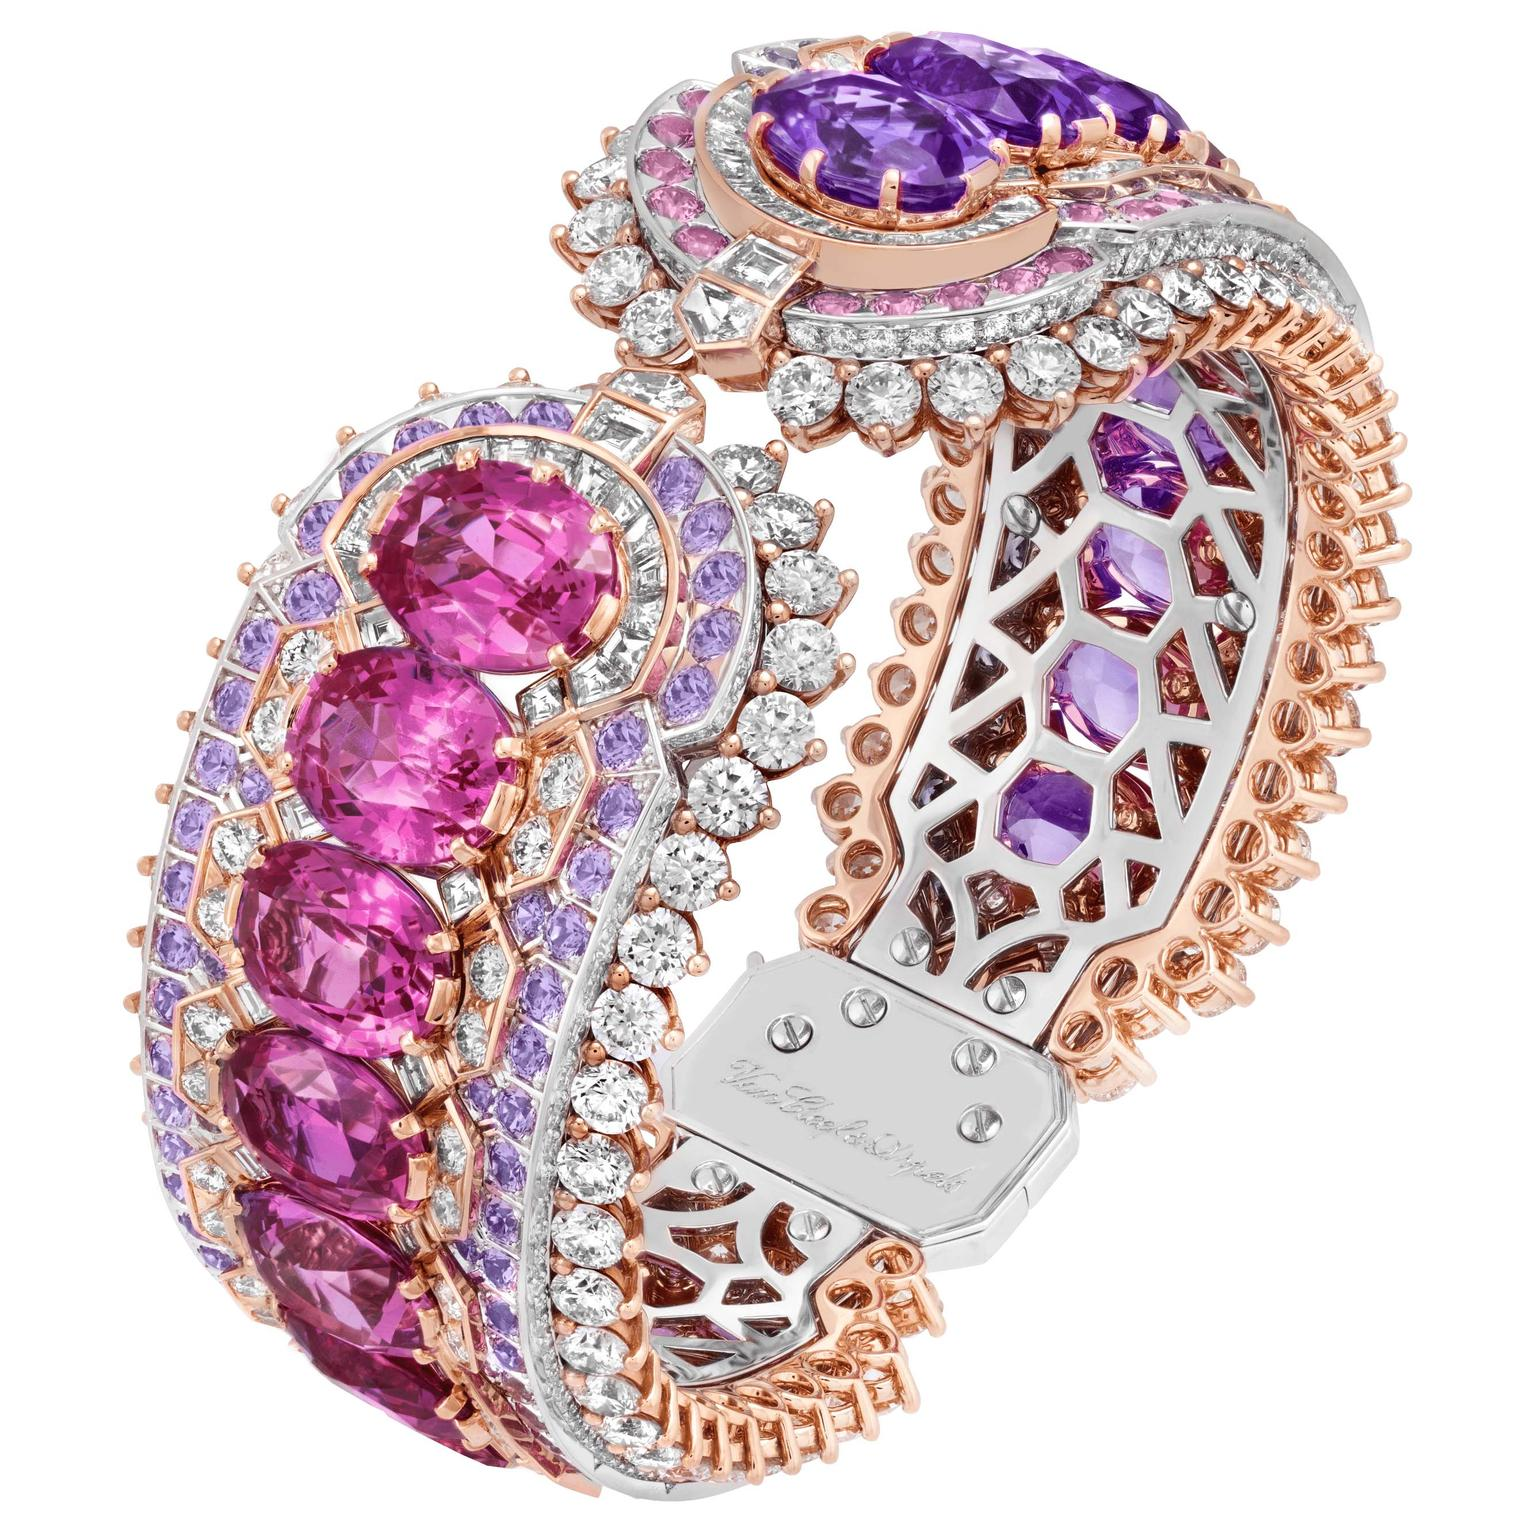 Van Cleef & Arpels Innamorato bracelet Romeo and Juliet jewels